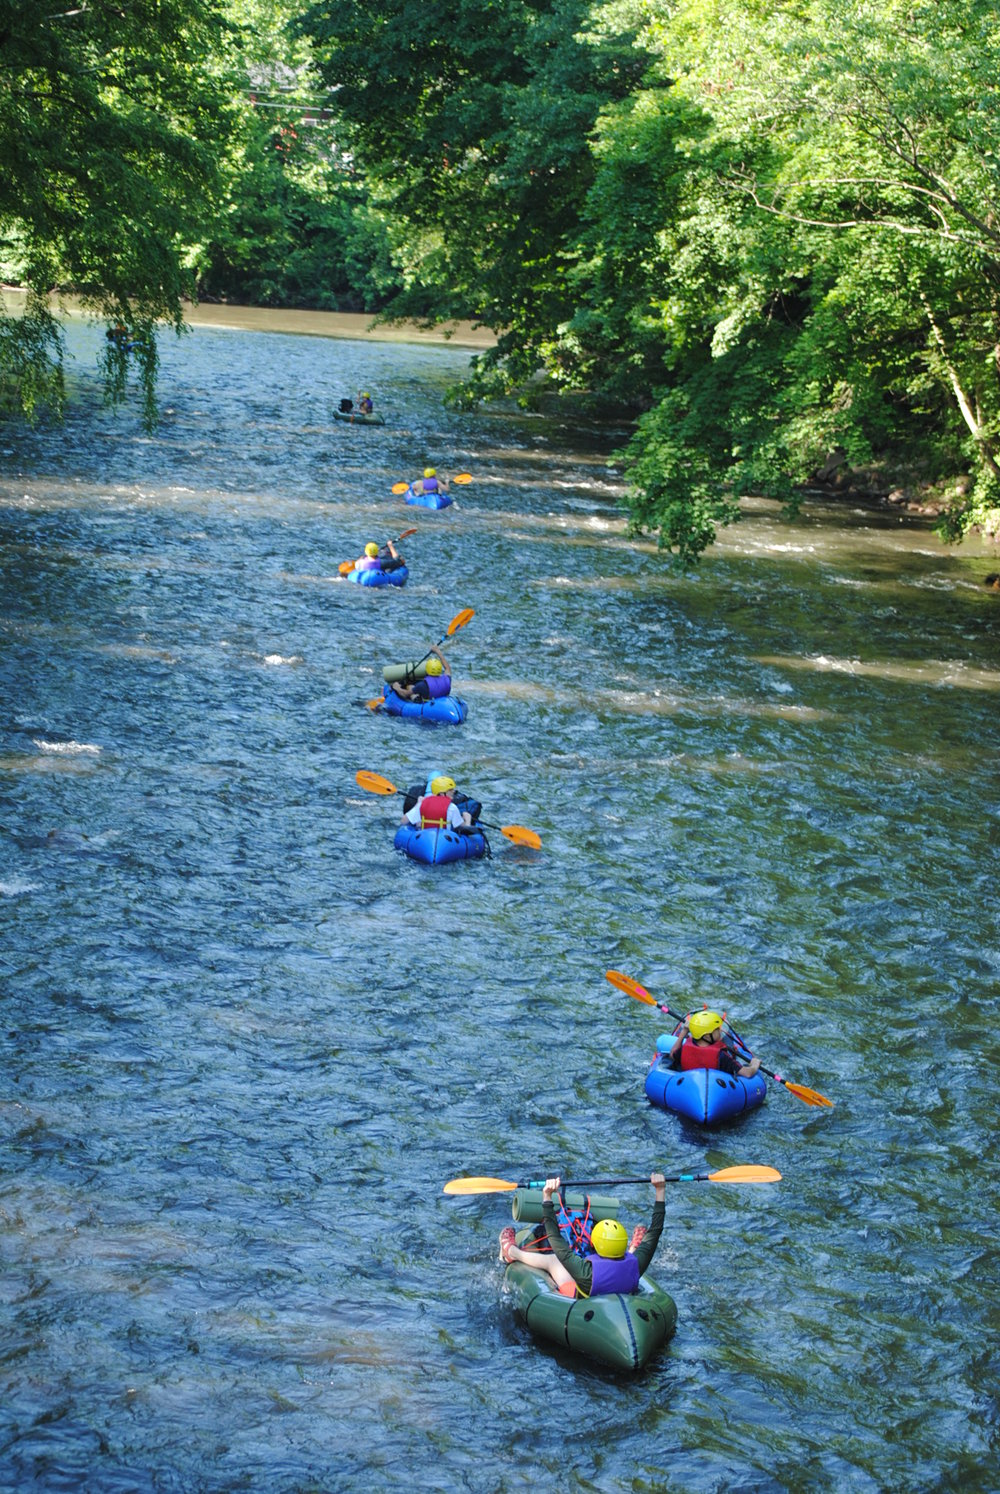 packrafting down the river, pic by wendy white.JPG